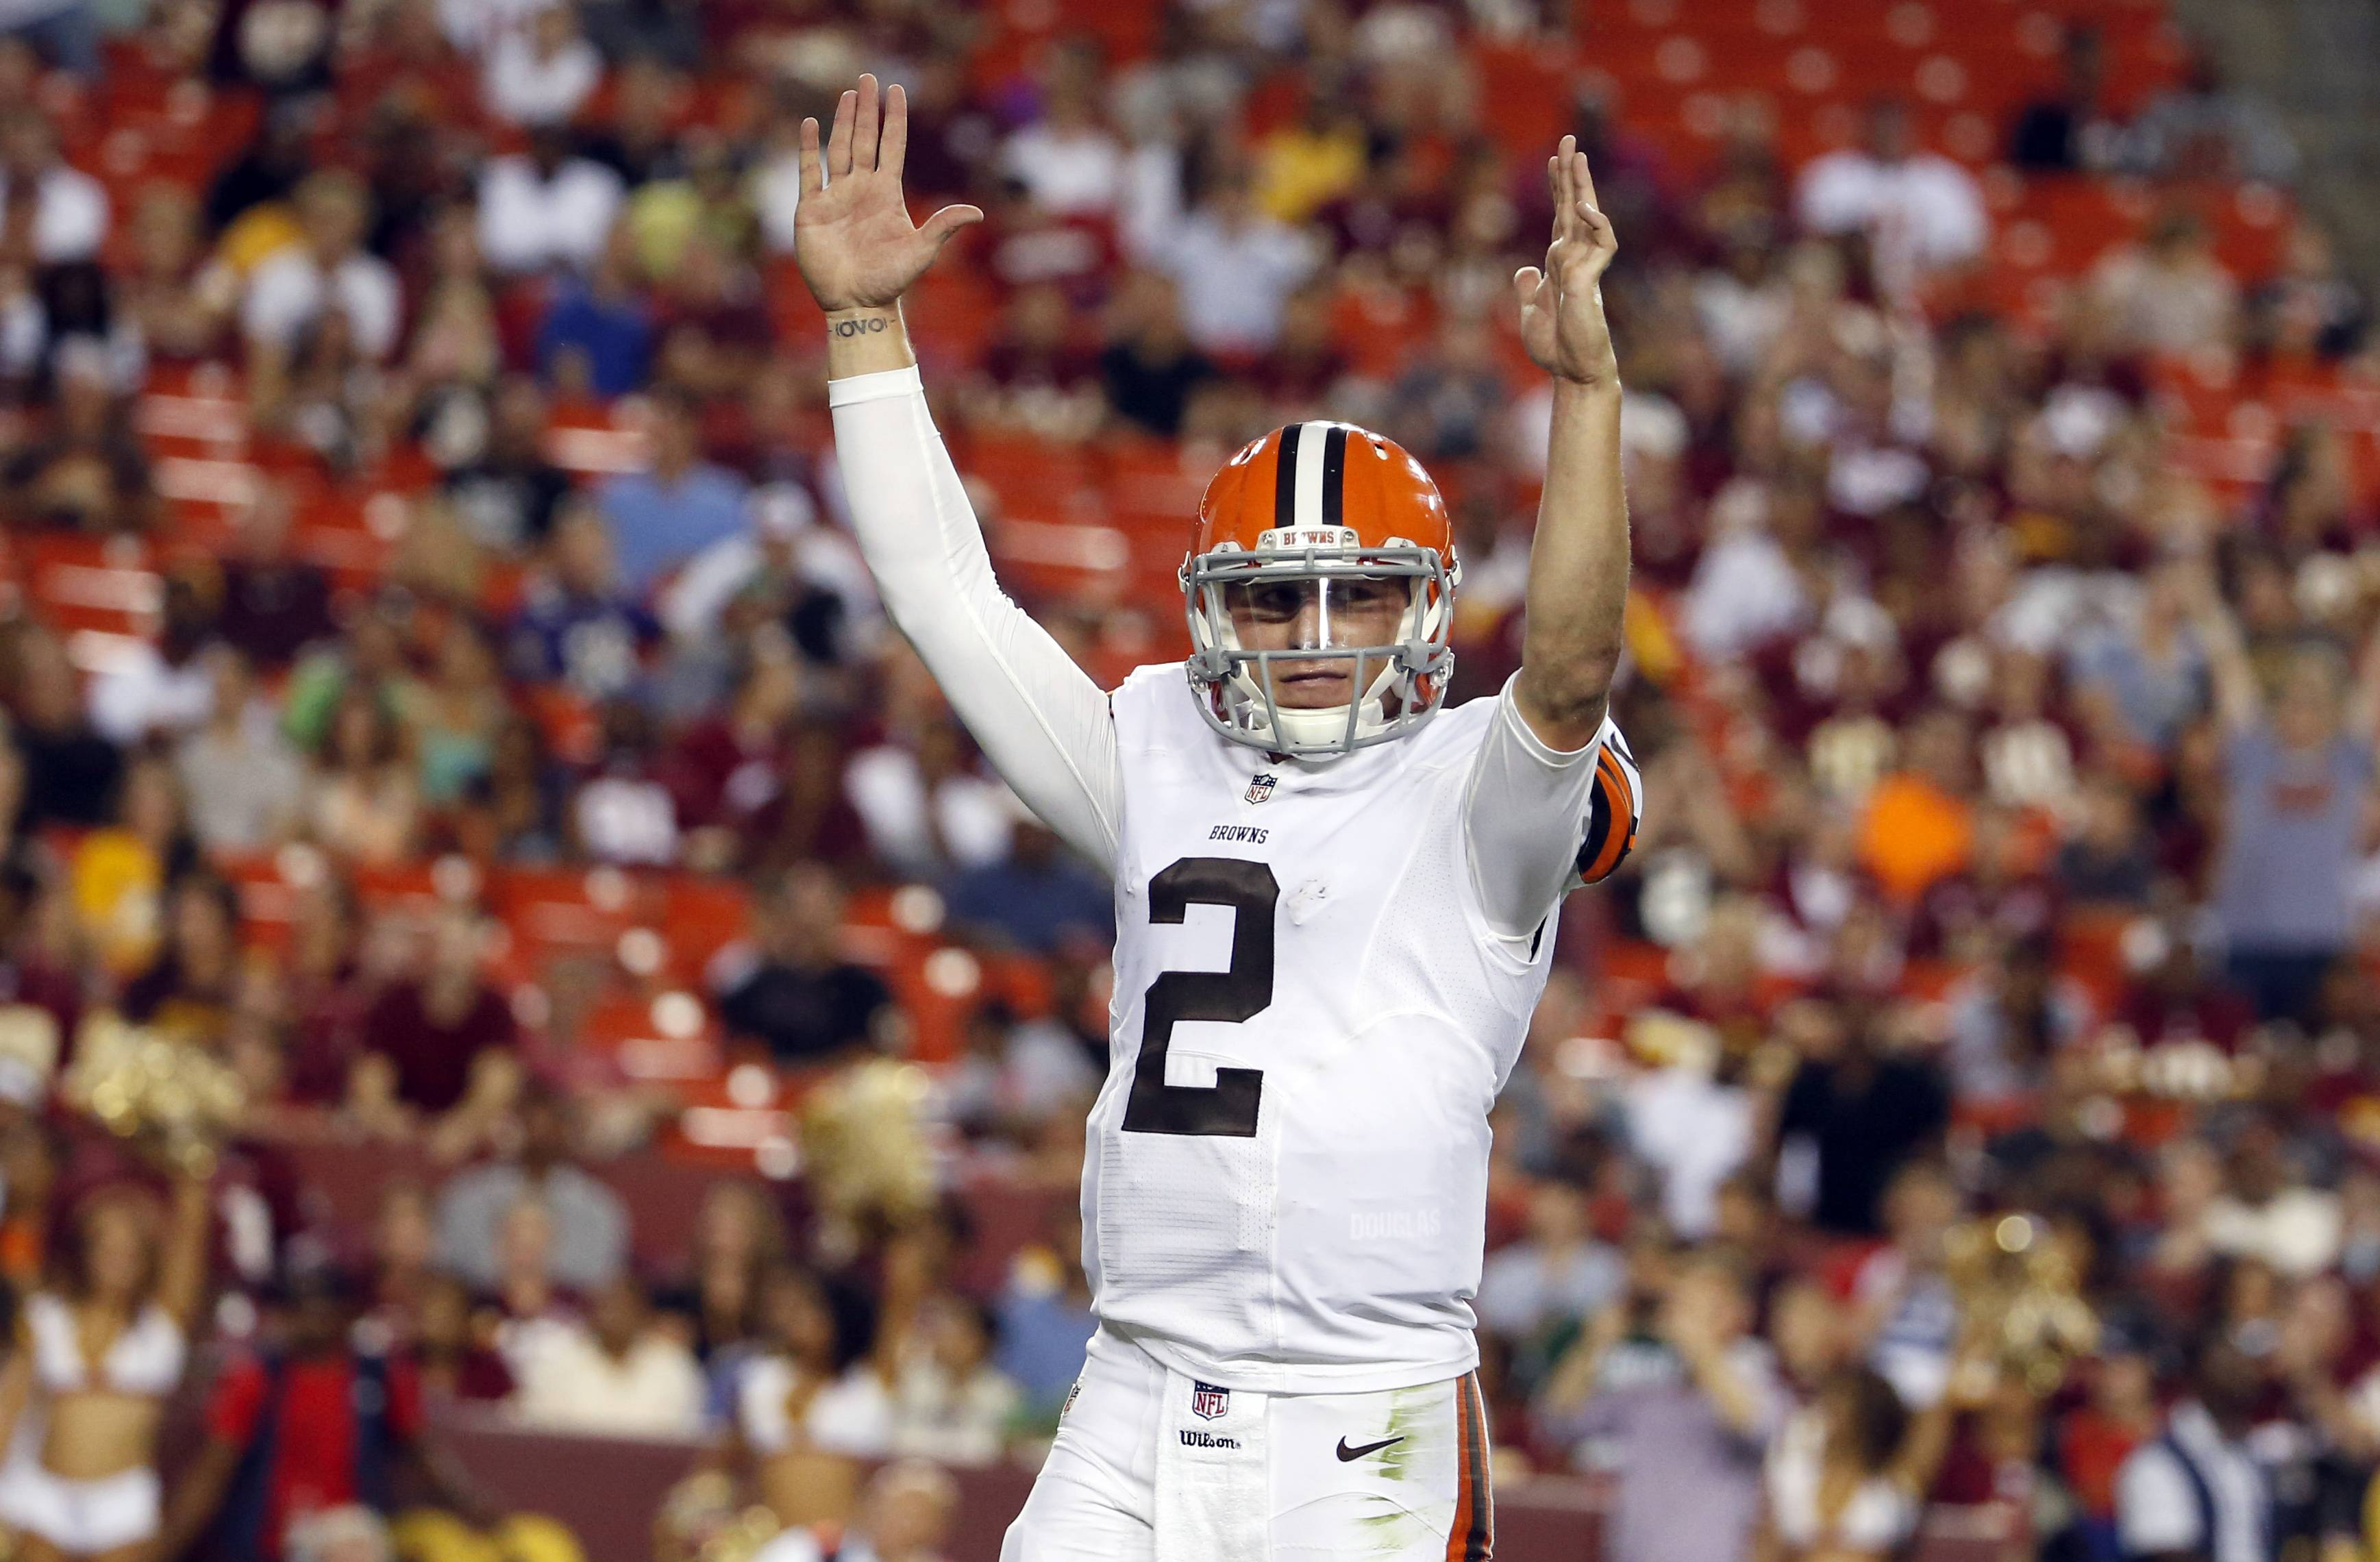 Cleveland Browns quarterback Johnny Manziel (2) celebrates running back Dion Lewis (28) scoring a touchdown on a pass, during the second half of an NFL preseason football game against the Washington Redskins Monday, Aug. 18, 2014, in Landover, Md. (AP Photo/Evan Vucci)